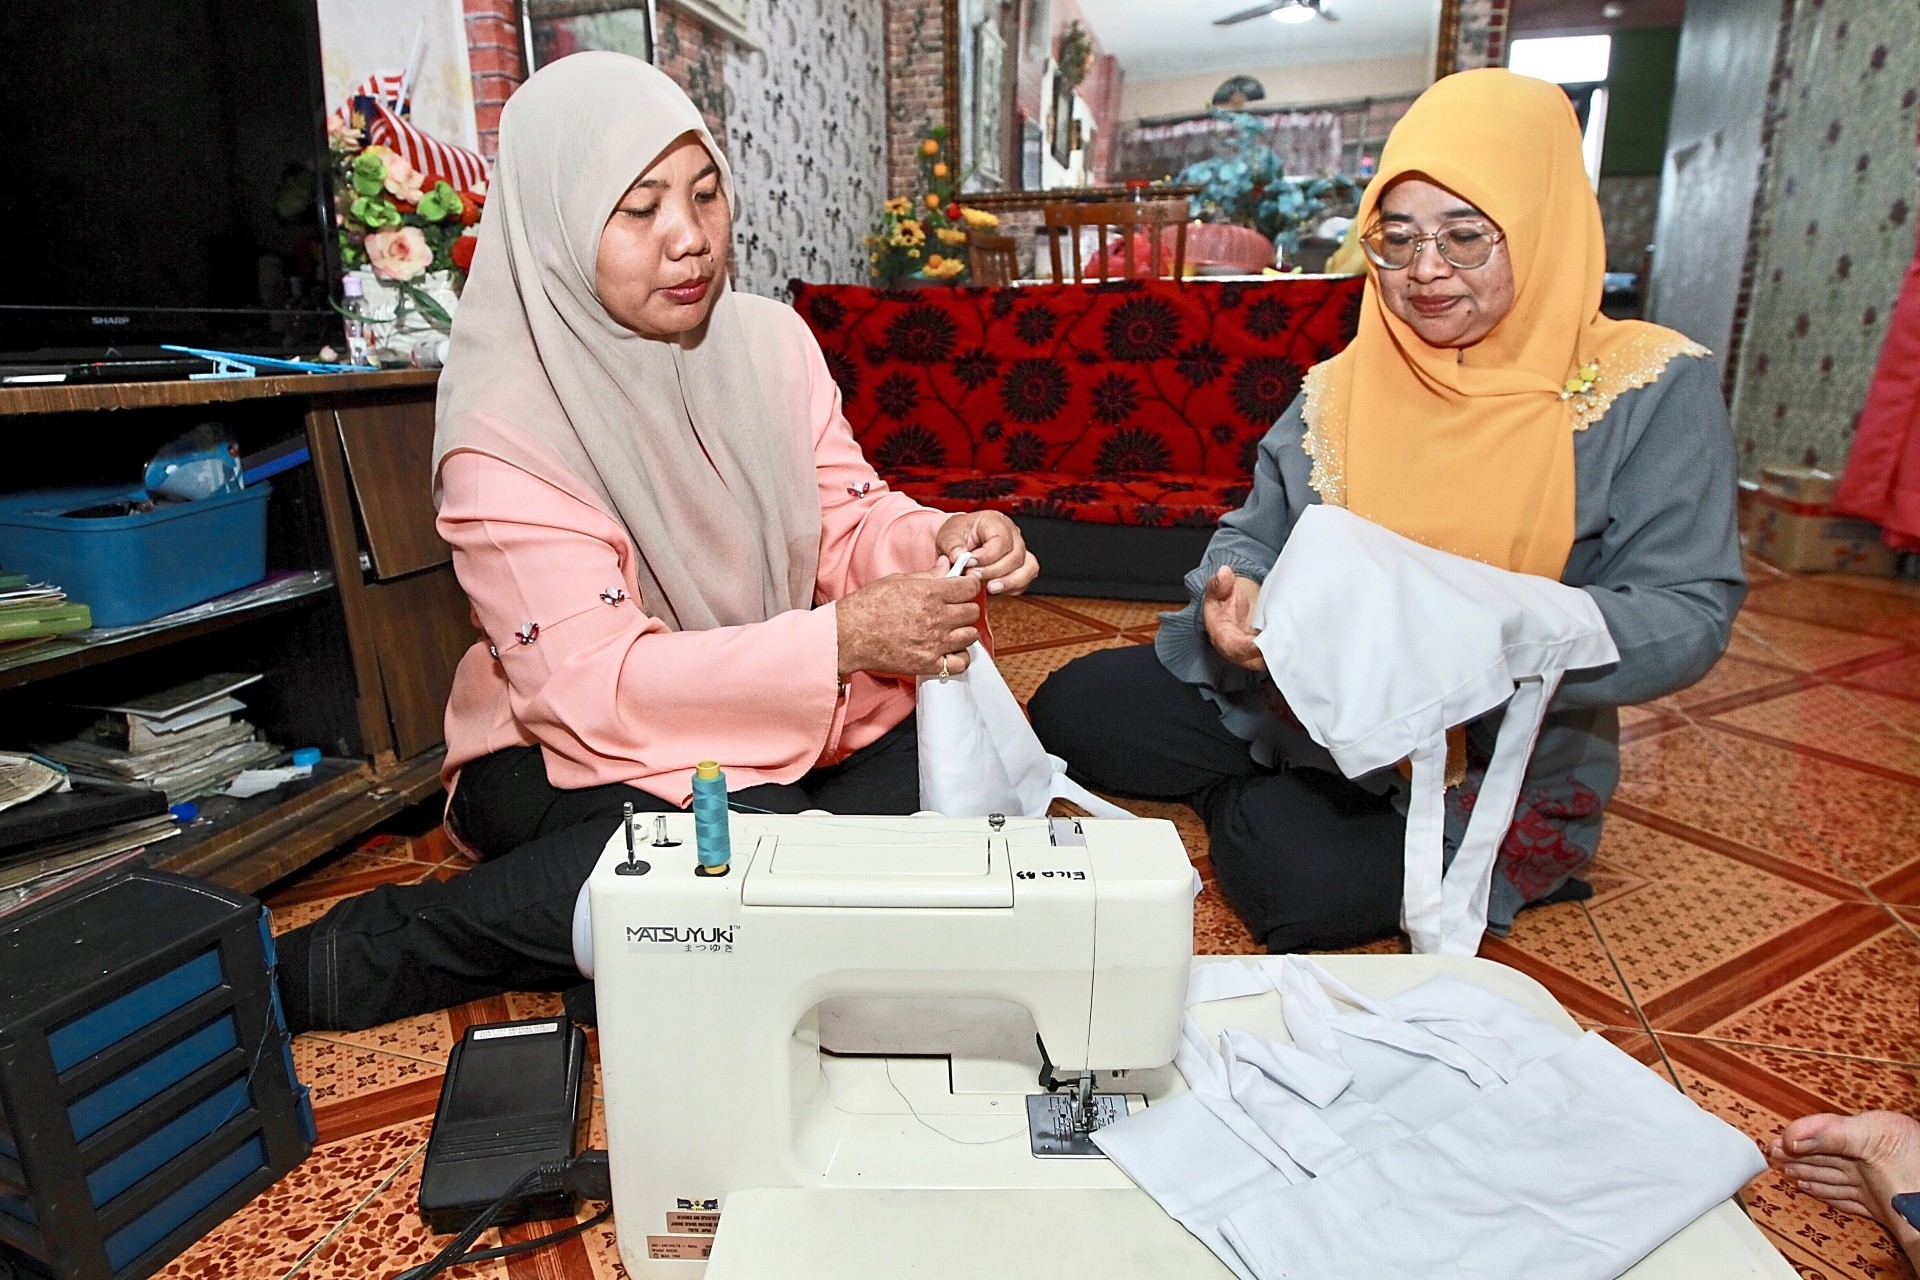 Zaitun (left) and Ila discussing their work at the latter's unit in Desa Mentari, Petaling Jaya. — Photos: NORAFIFI EHSAN and SHAARI CHEMAT/The Star and courtesy of Kain Movement